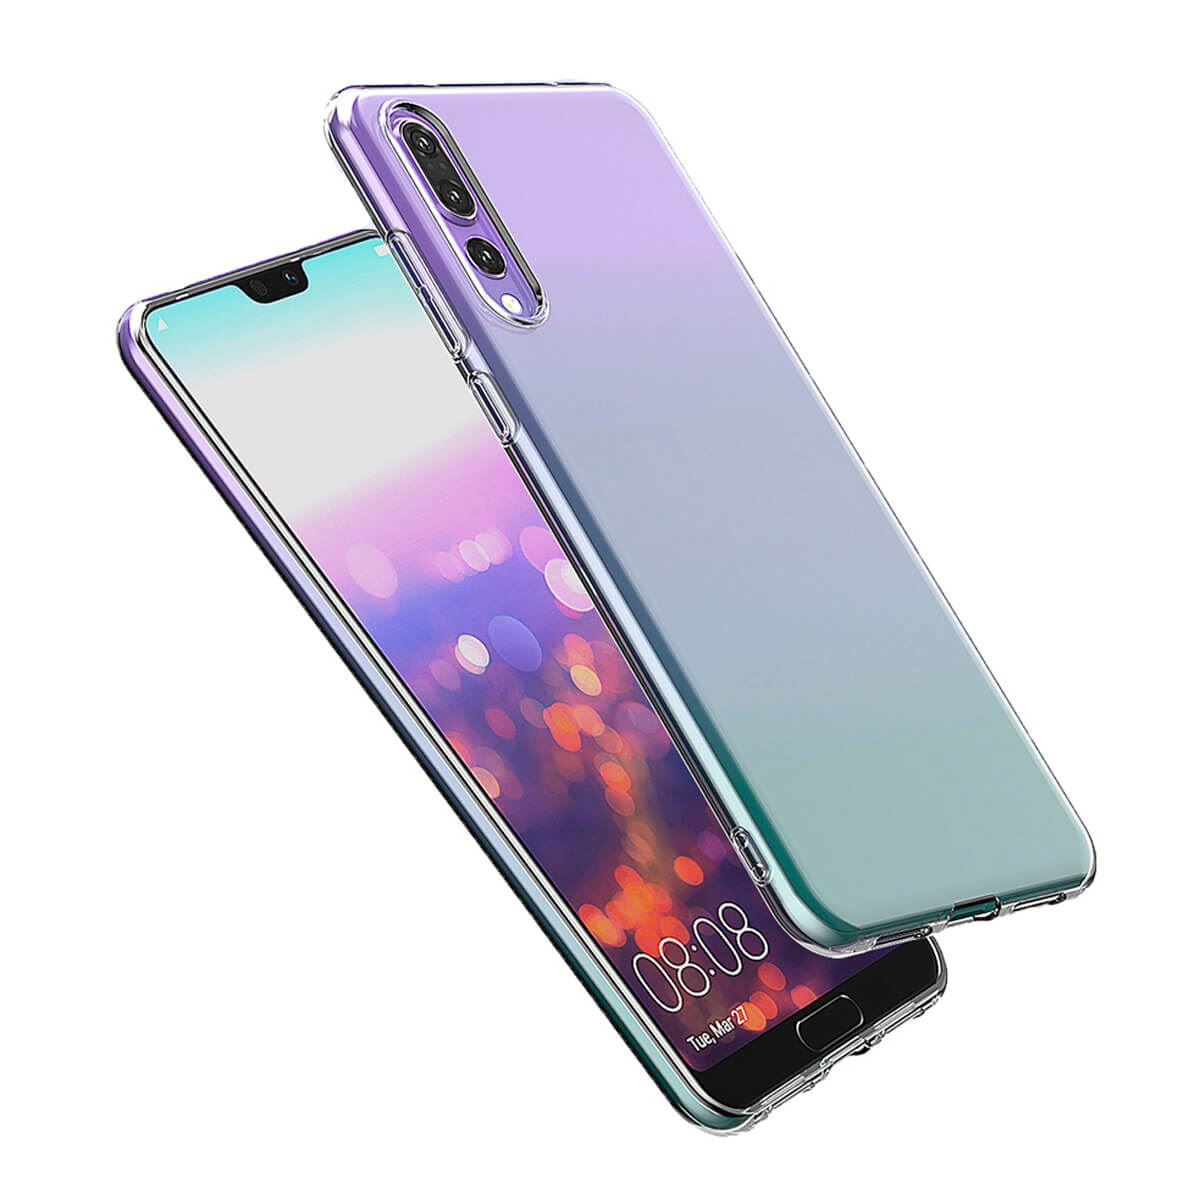 Shockproof-Silicone-Protective-Clear-Gel-Cover-Case-For-Huawei-P20-Pro-P-Smart thumbnail 51